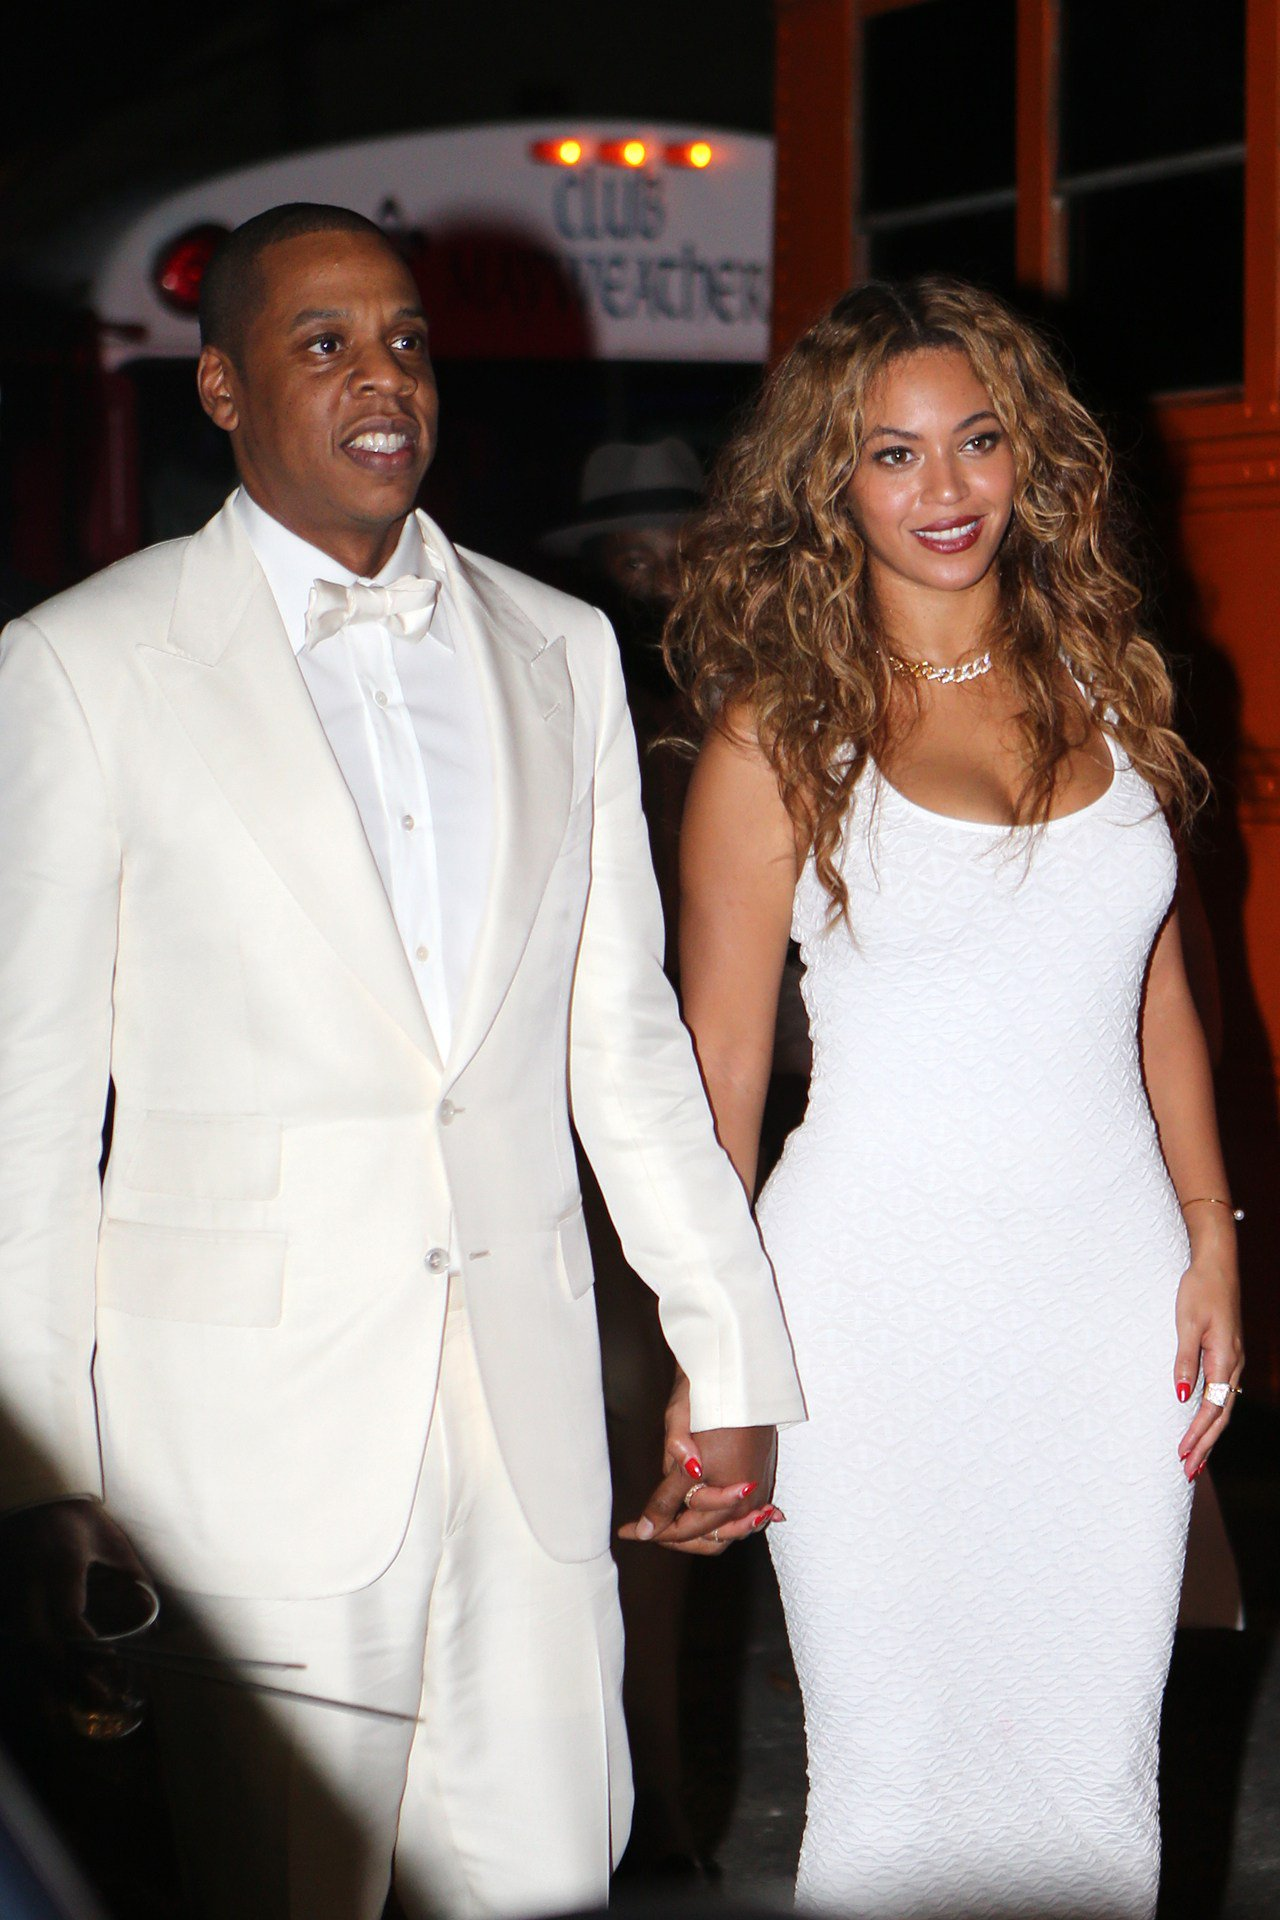 What did Beyoncé say about her wedding dress? https://t.co/qqdw8oOjE5 https://t.co/47pOIOokd3